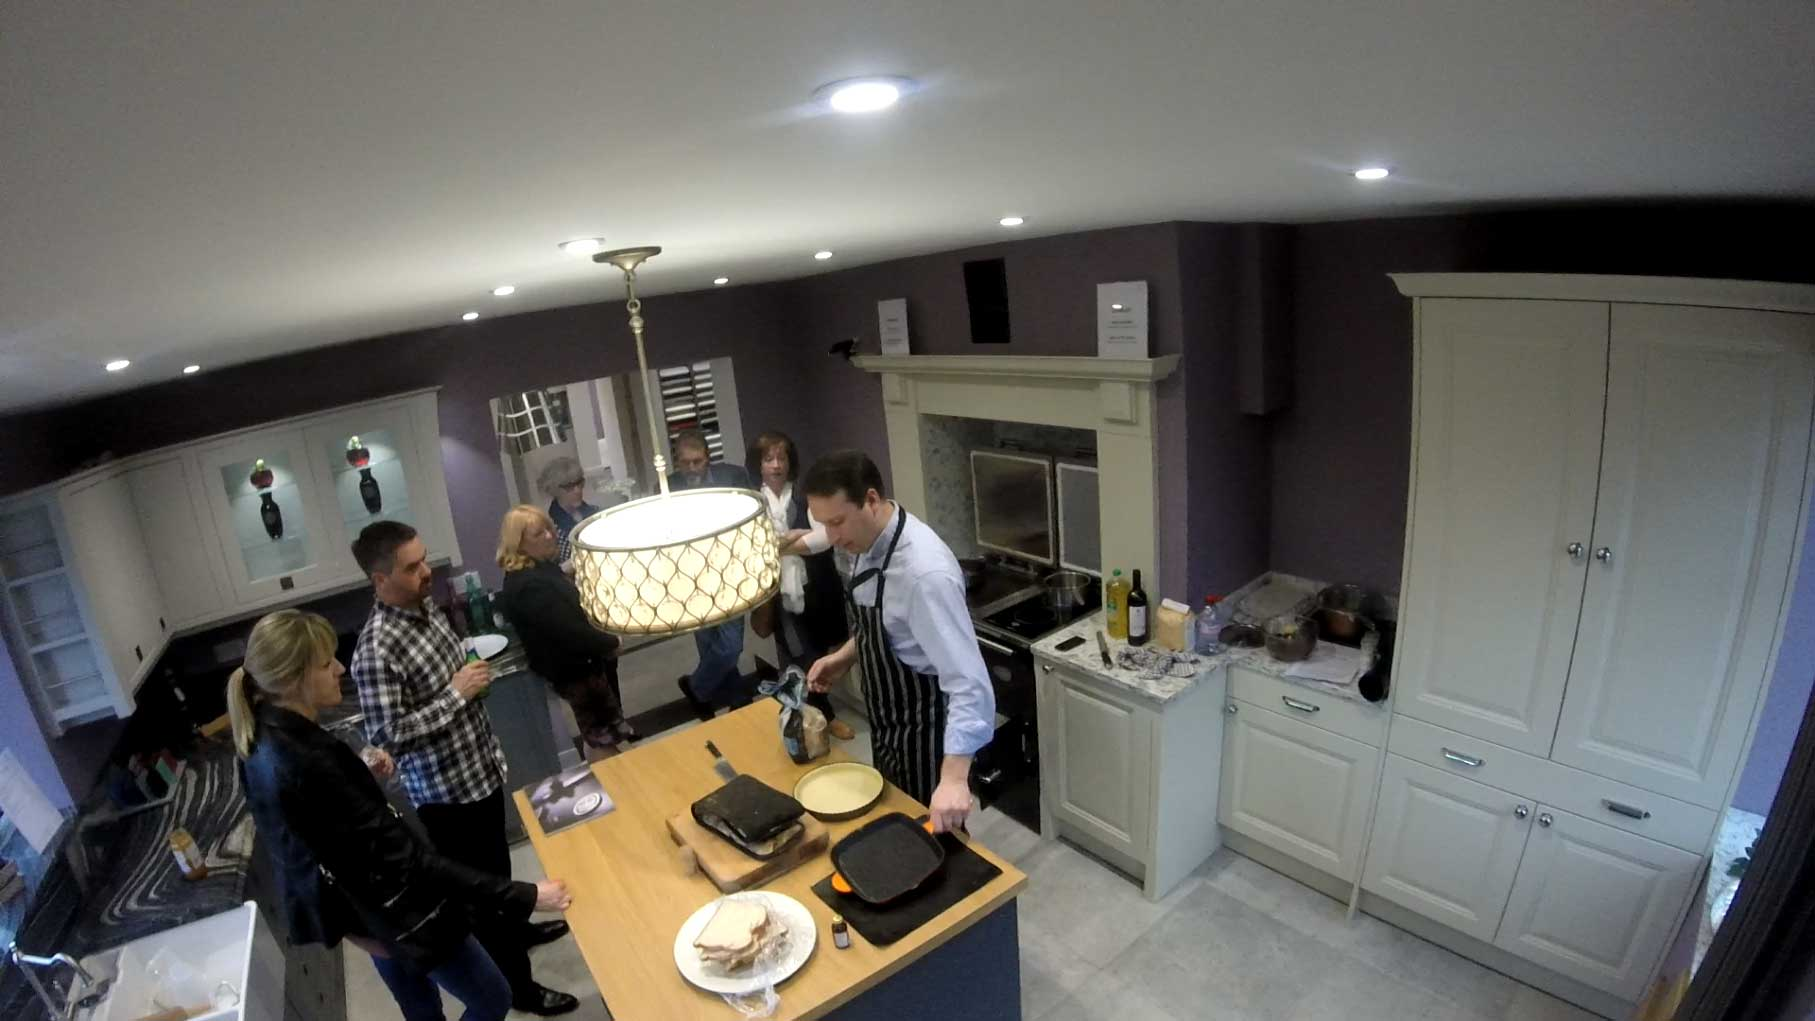 lb-kitchens-essex-events9.jpg